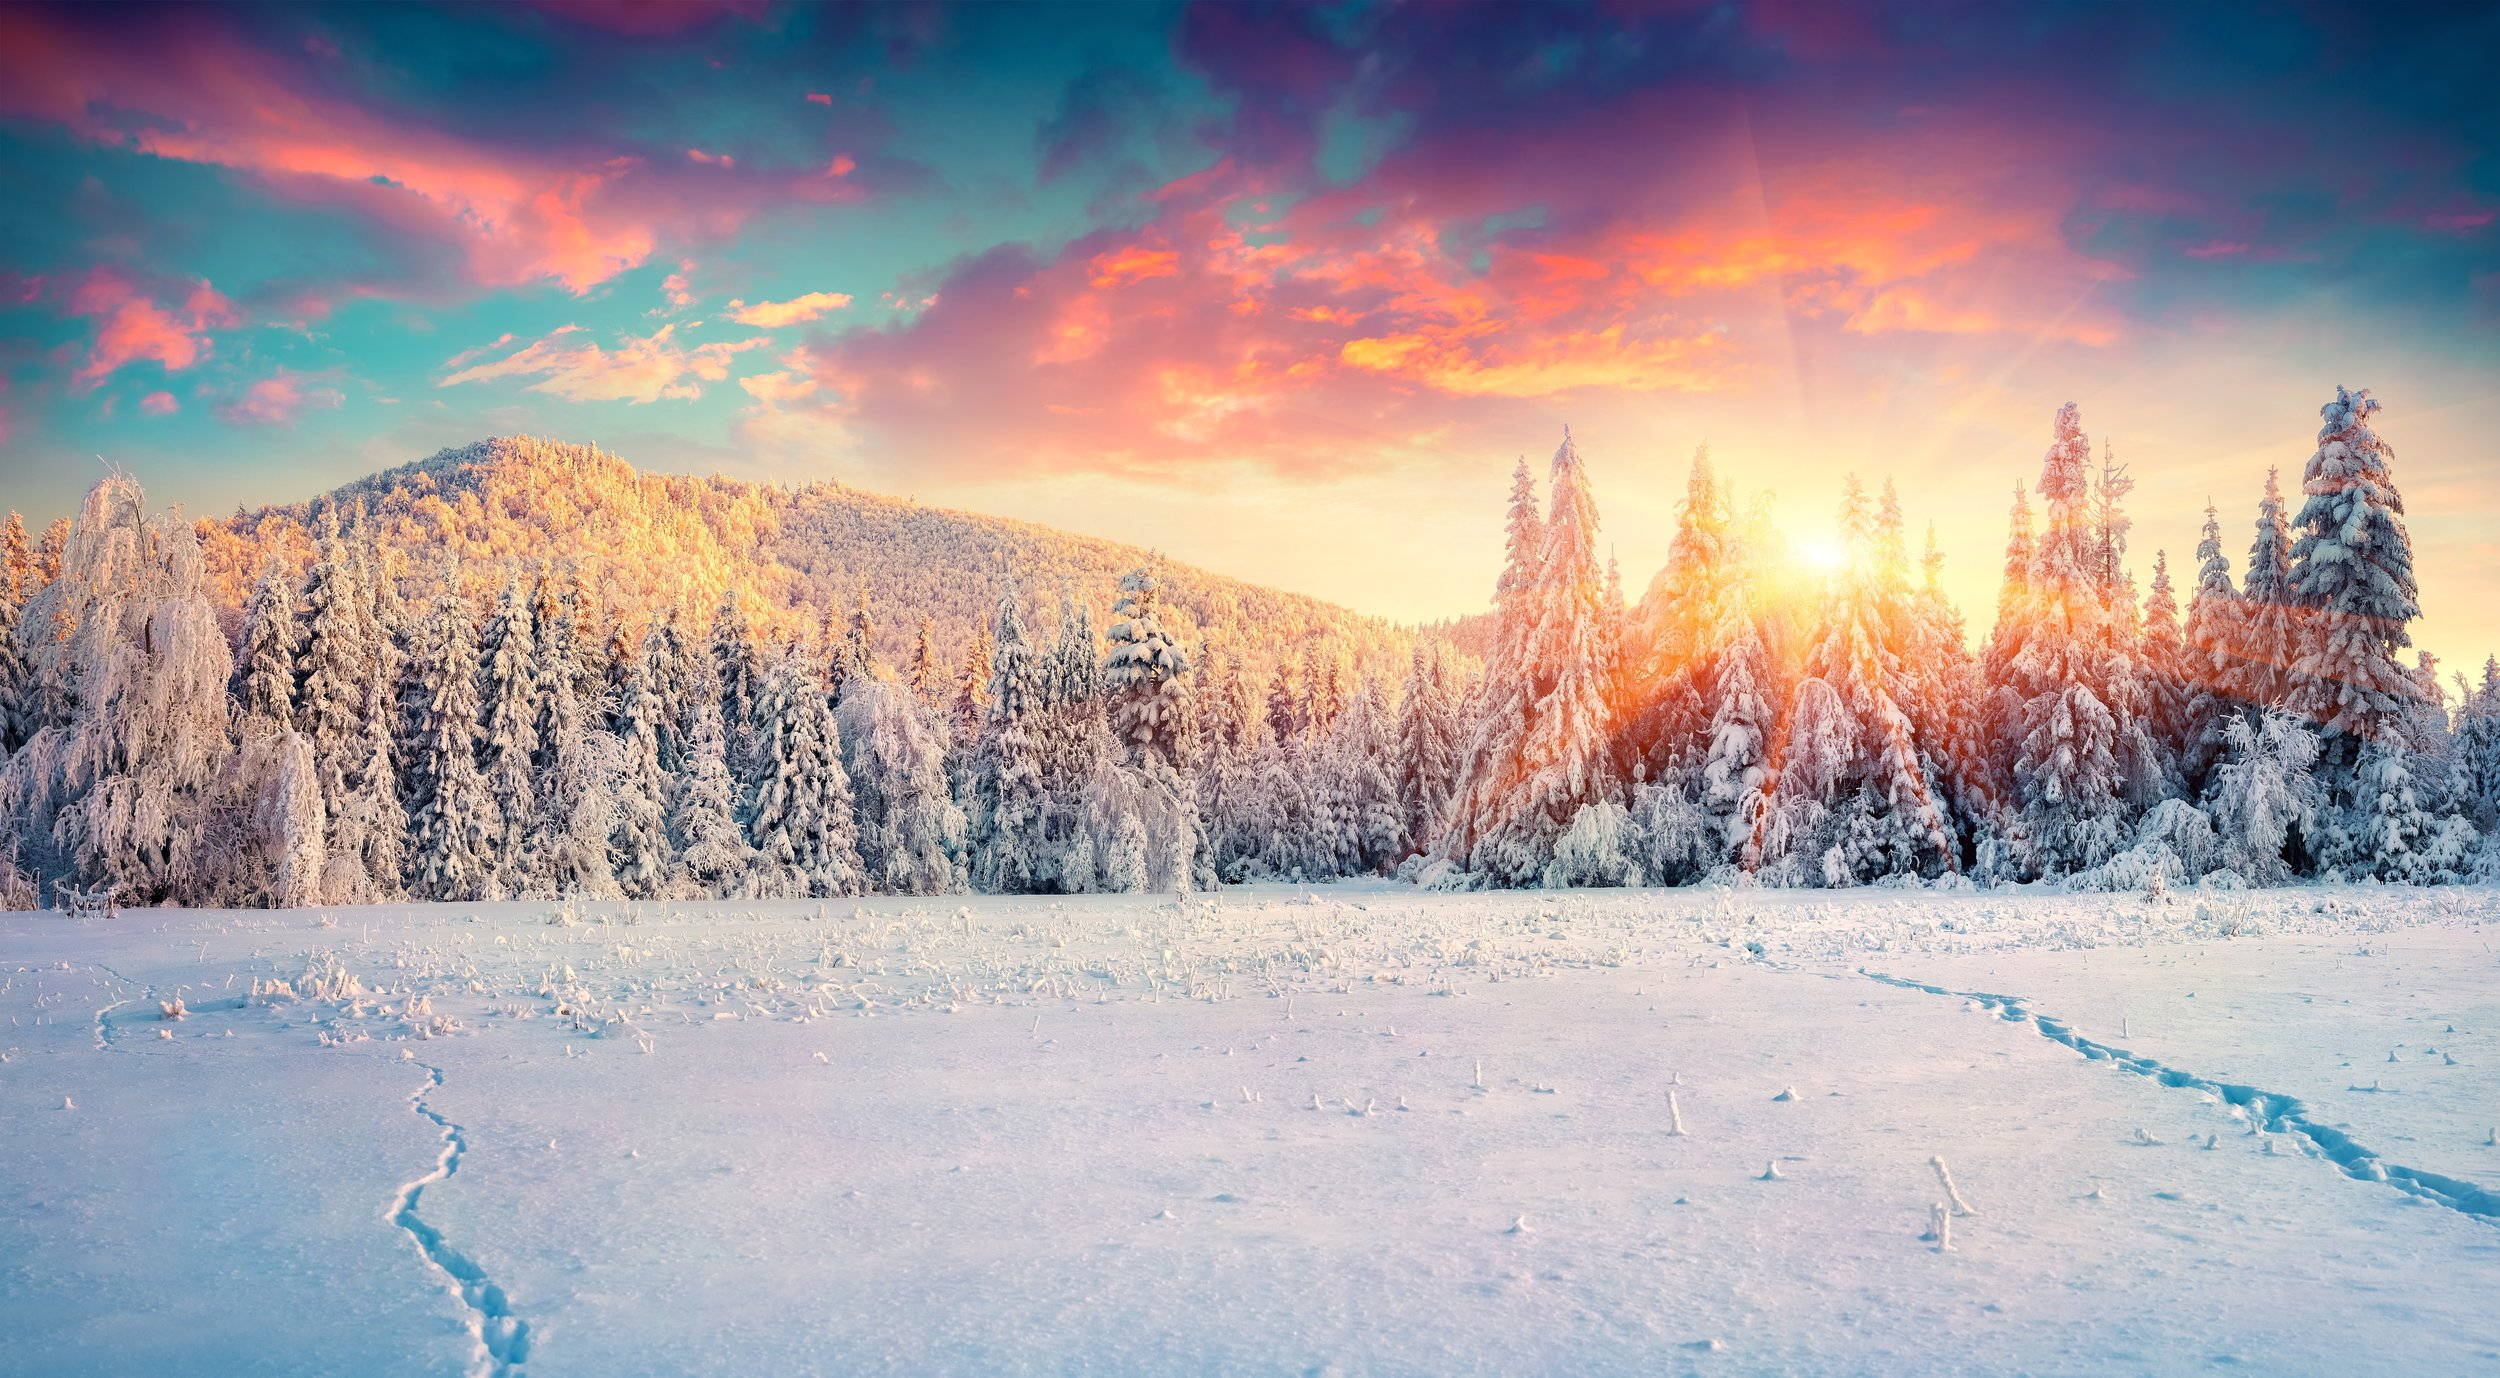 Colorful-winter-panorama-in-the-Carpathian-mountains.-497893528_8163x4500@0.5.jpeg